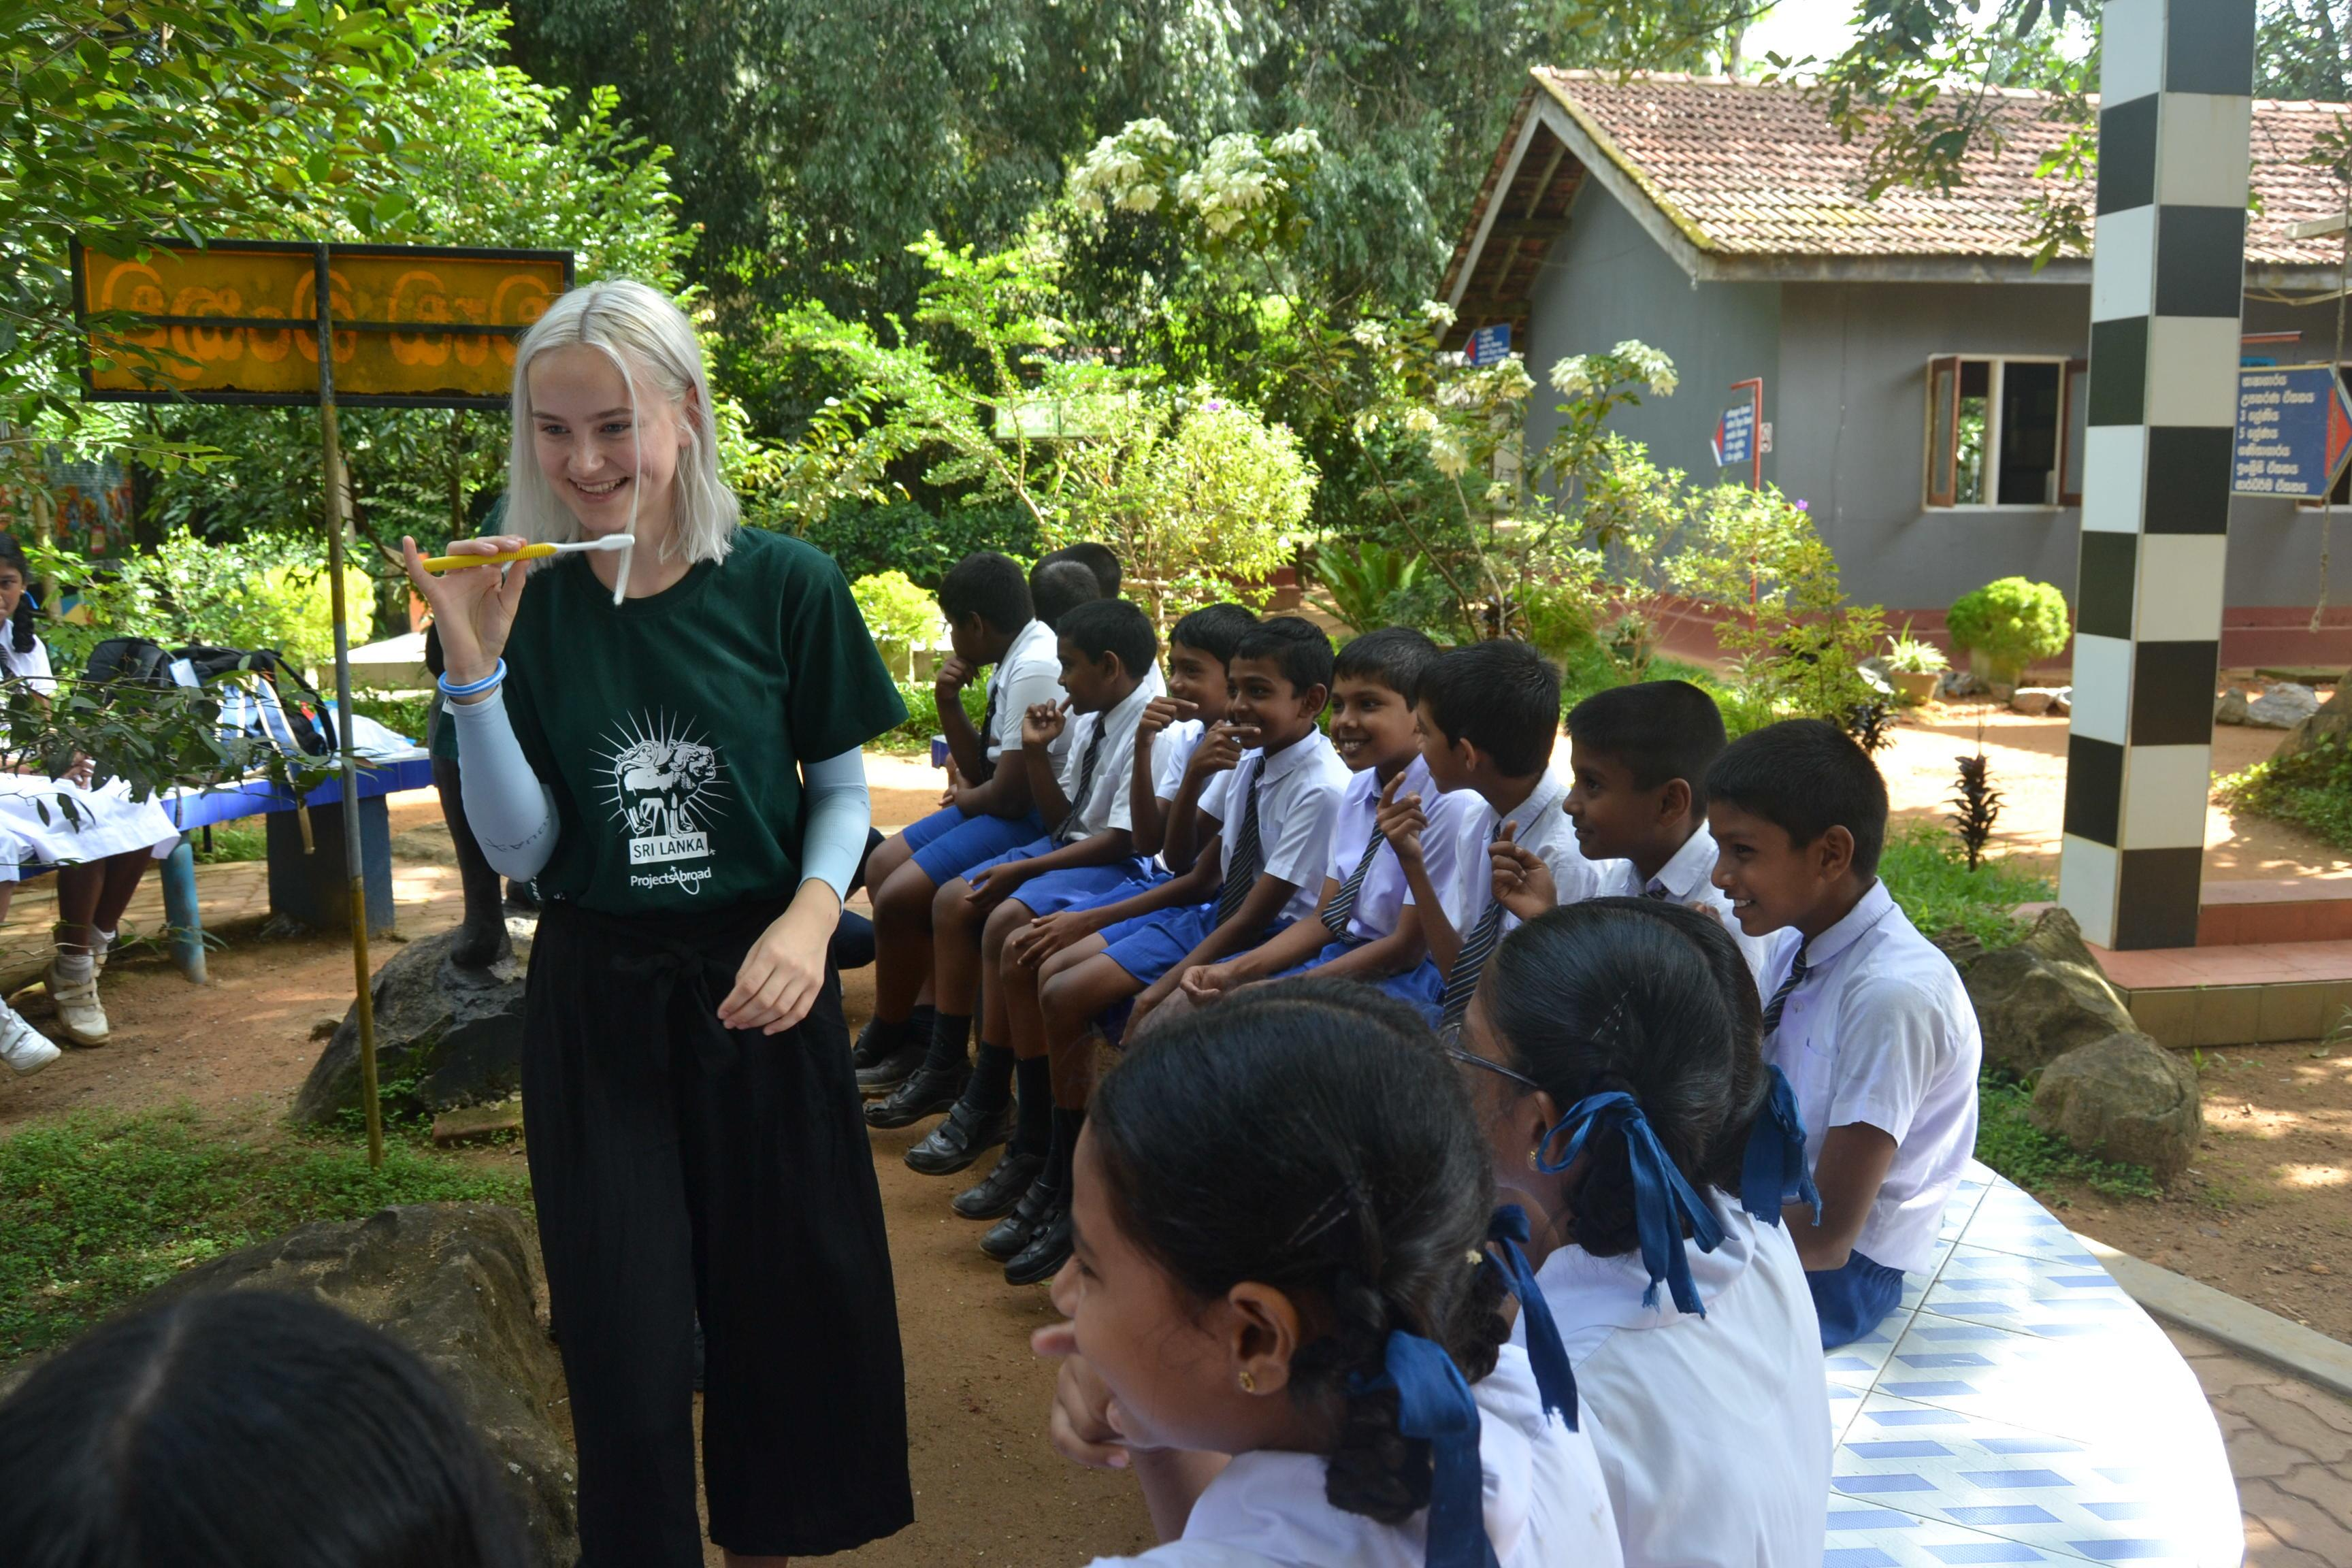 Female Dentistry intern teaches a group of school children about good dental hygiene during her Dentistry placement in Sri Lanka.